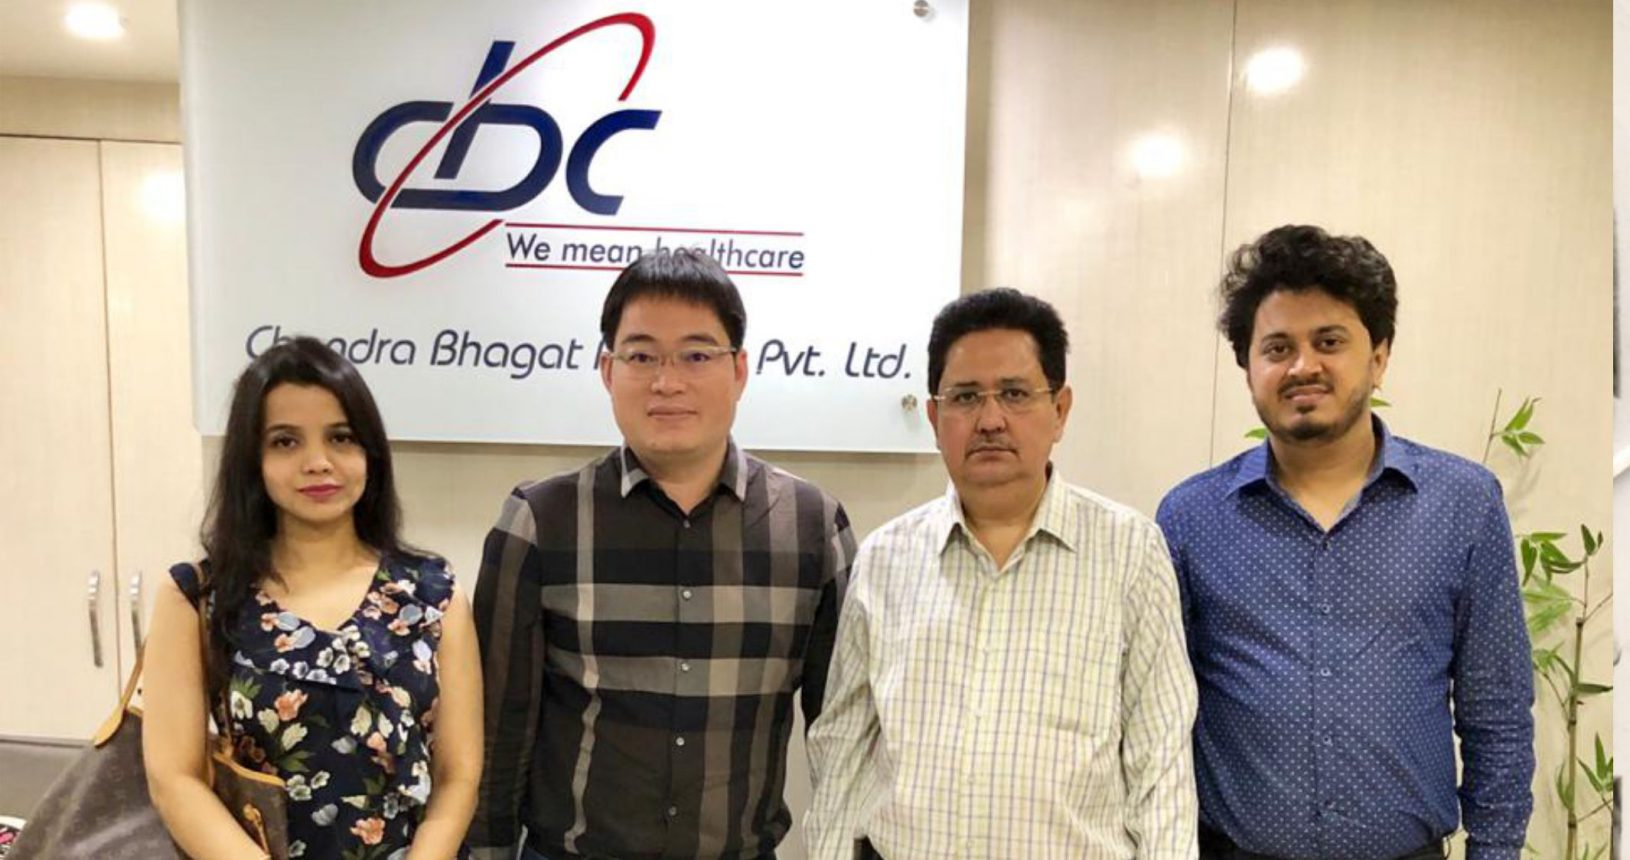 Mr. Hemant Bhagat, Mr. Pranav Bhagat & Ms. Prachi Bhagat with Mr. Vinson Managing Director Xiamen Runchneg Pharma China